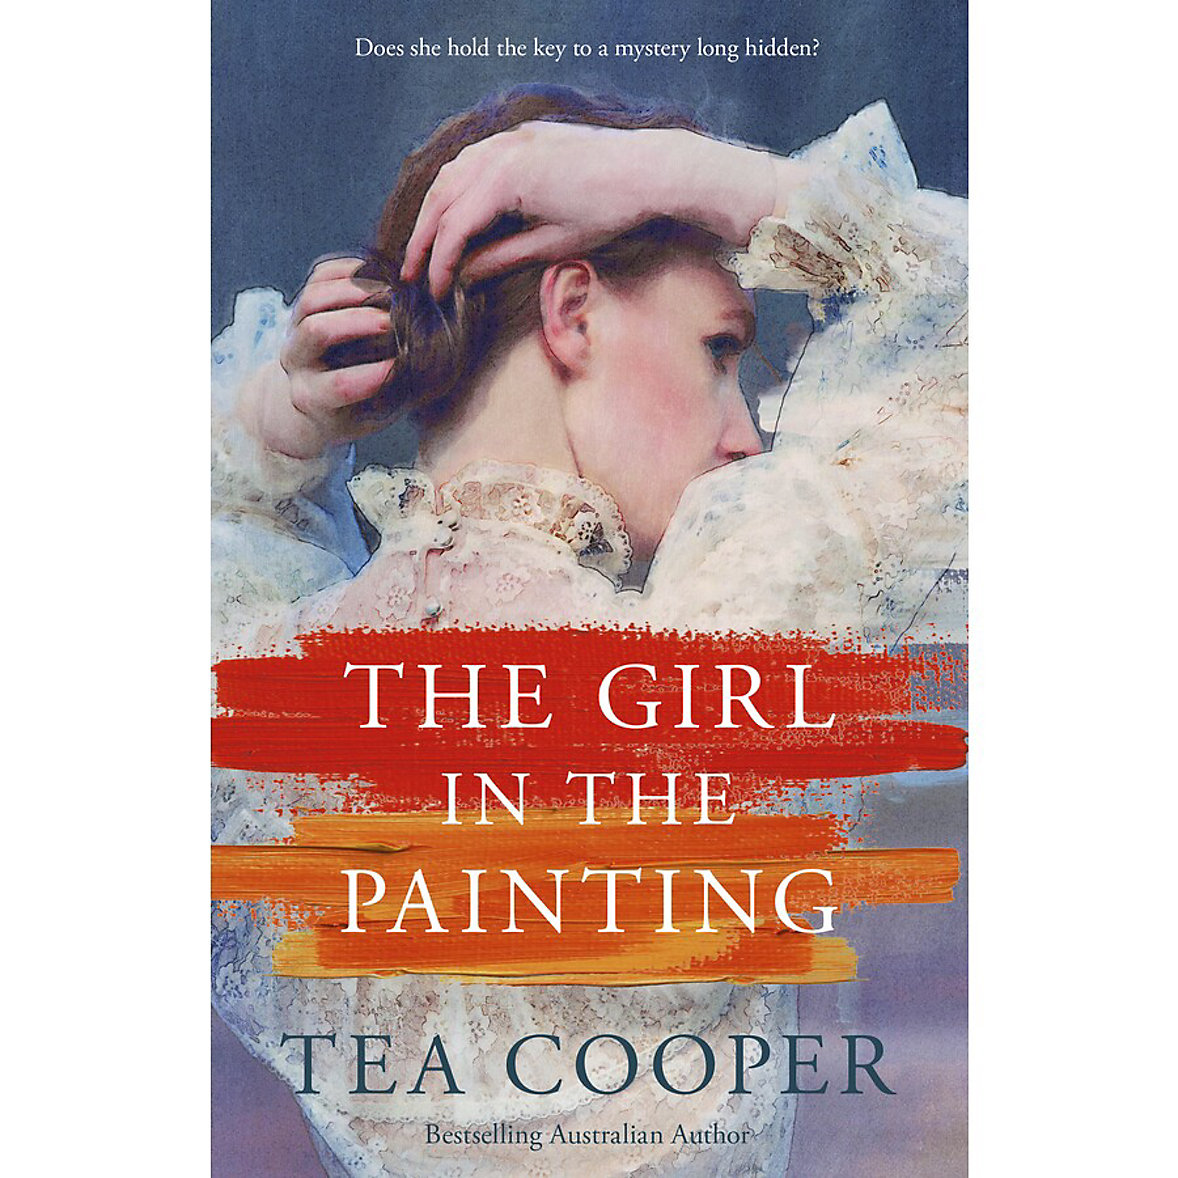 The Girl in the Painting